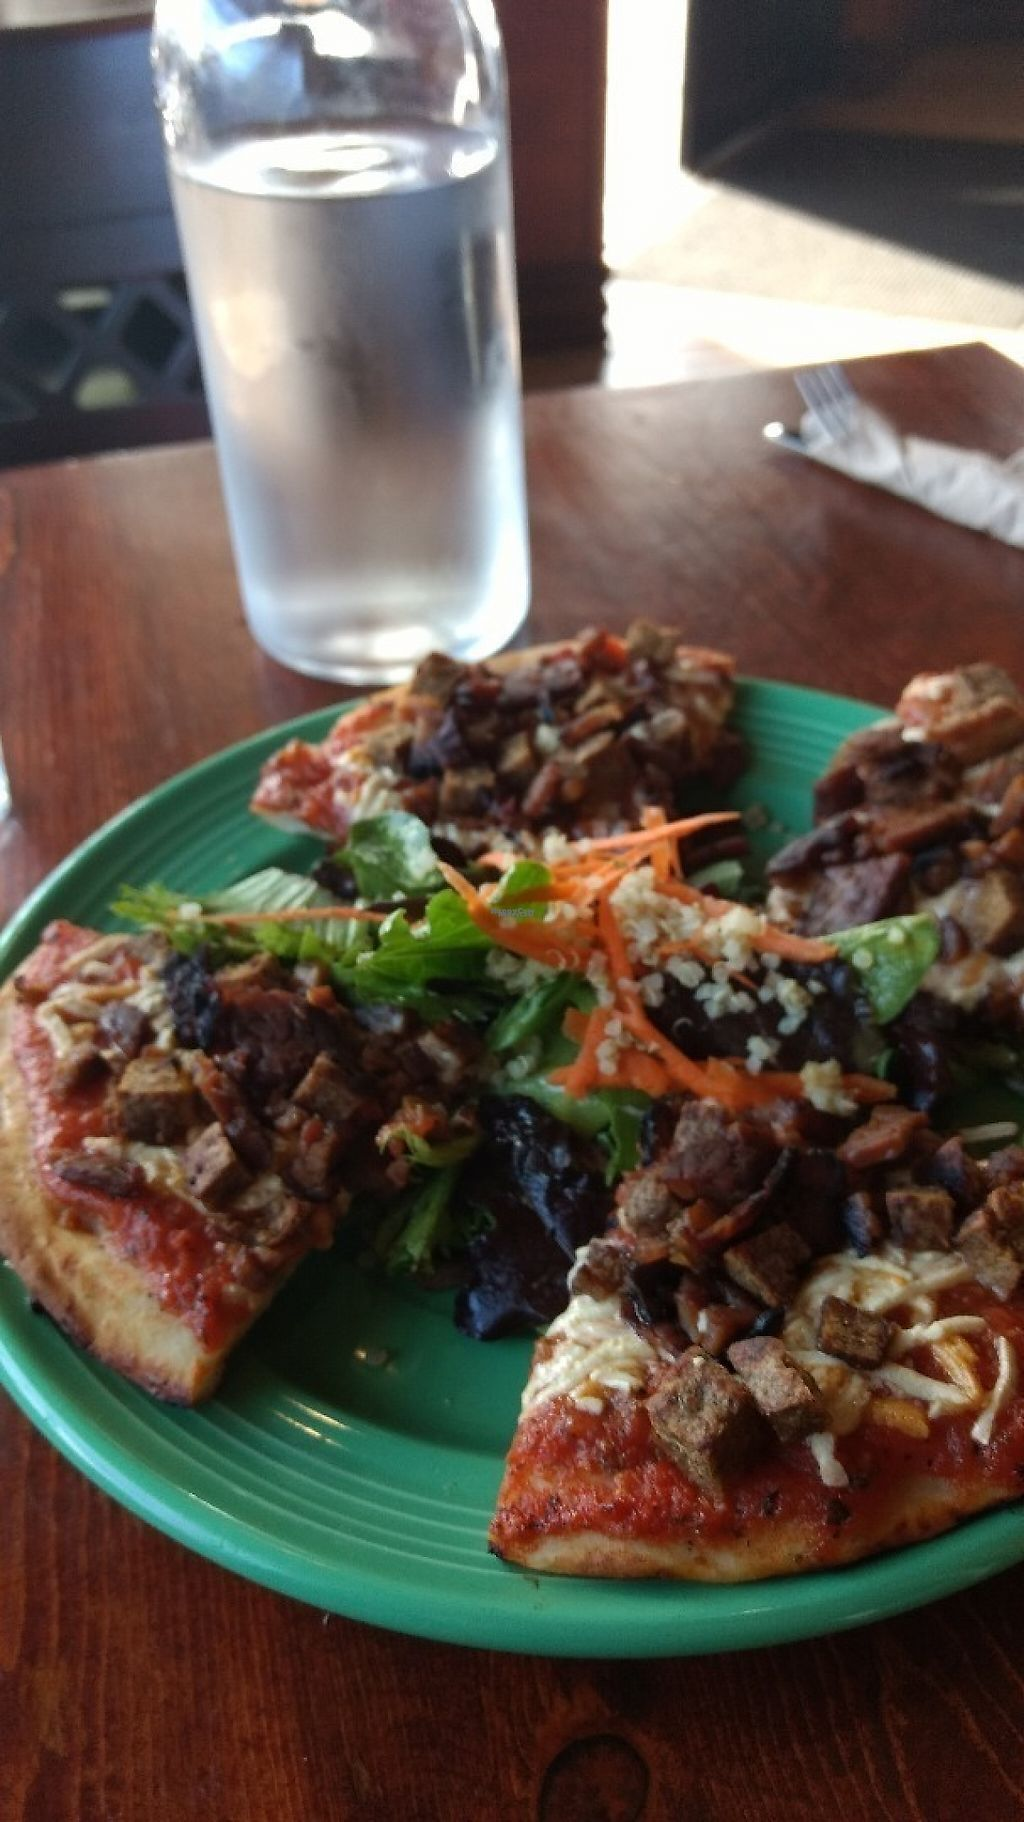 "Photo of The Grain Cafe  by <a href=""/members/profile/dreadjohn"">dreadjohn</a> <br/>Sausage pizza <br/> March 21, 2017  - <a href='/contact/abuse/image/89010/239256'>Report</a>"